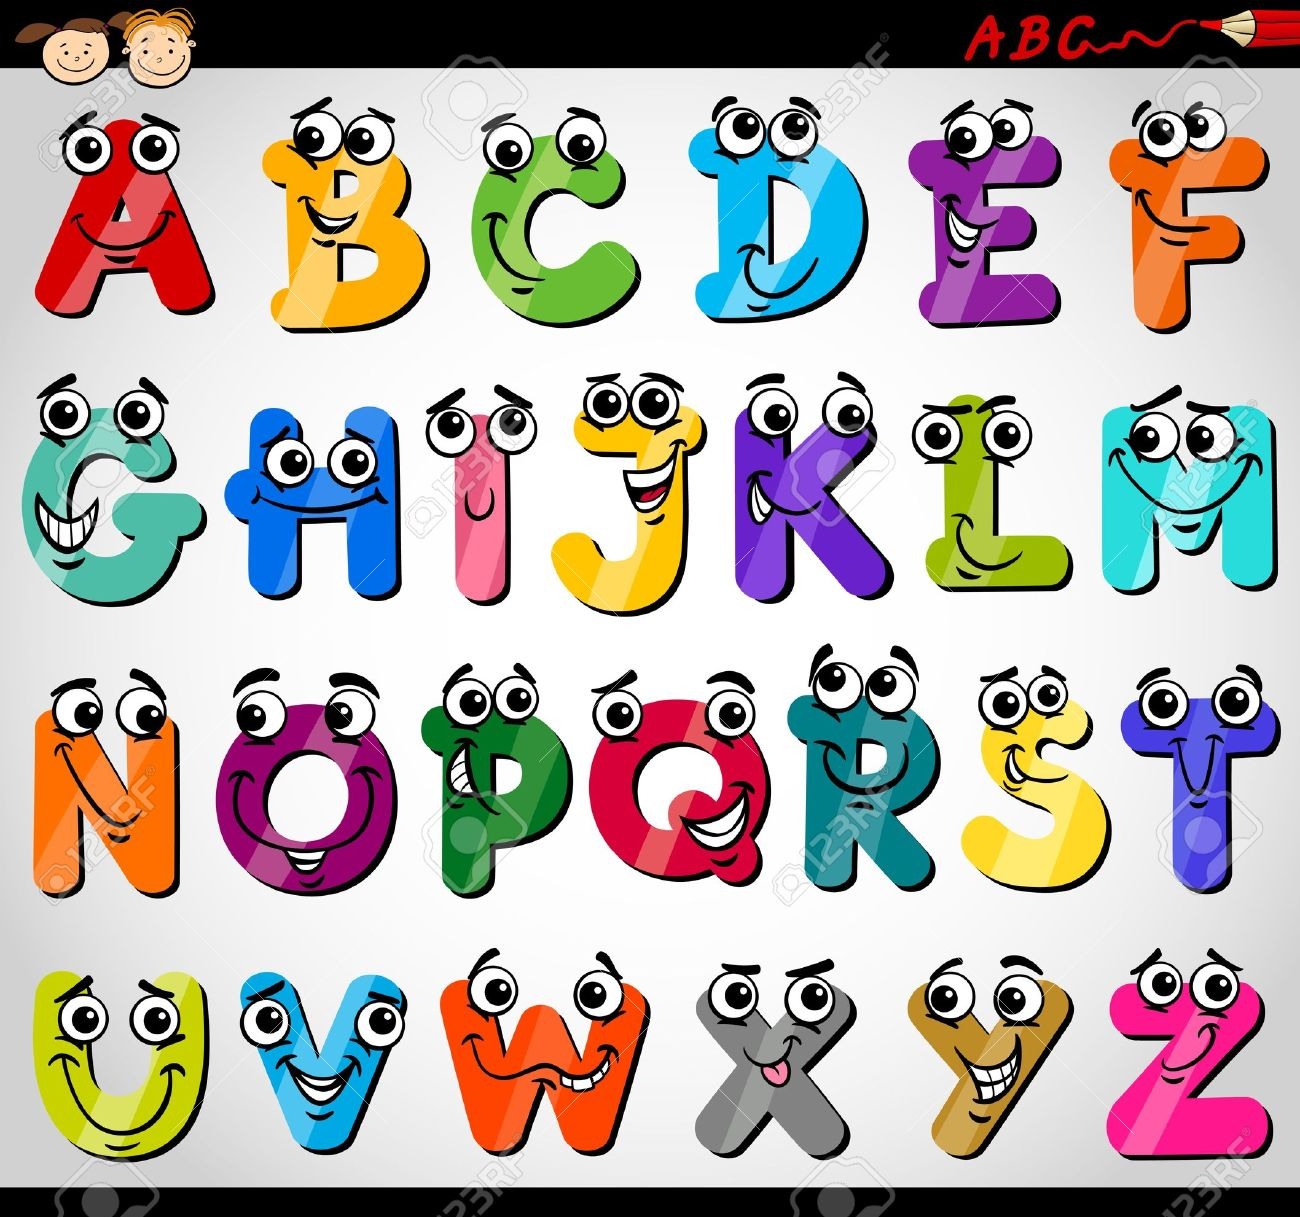 cartoon illustration of funny capital letters alphabet for children royalty free cliparts vectors and stock illustration image 21590732 cartoon illustration of funny capital letters alphabet for children